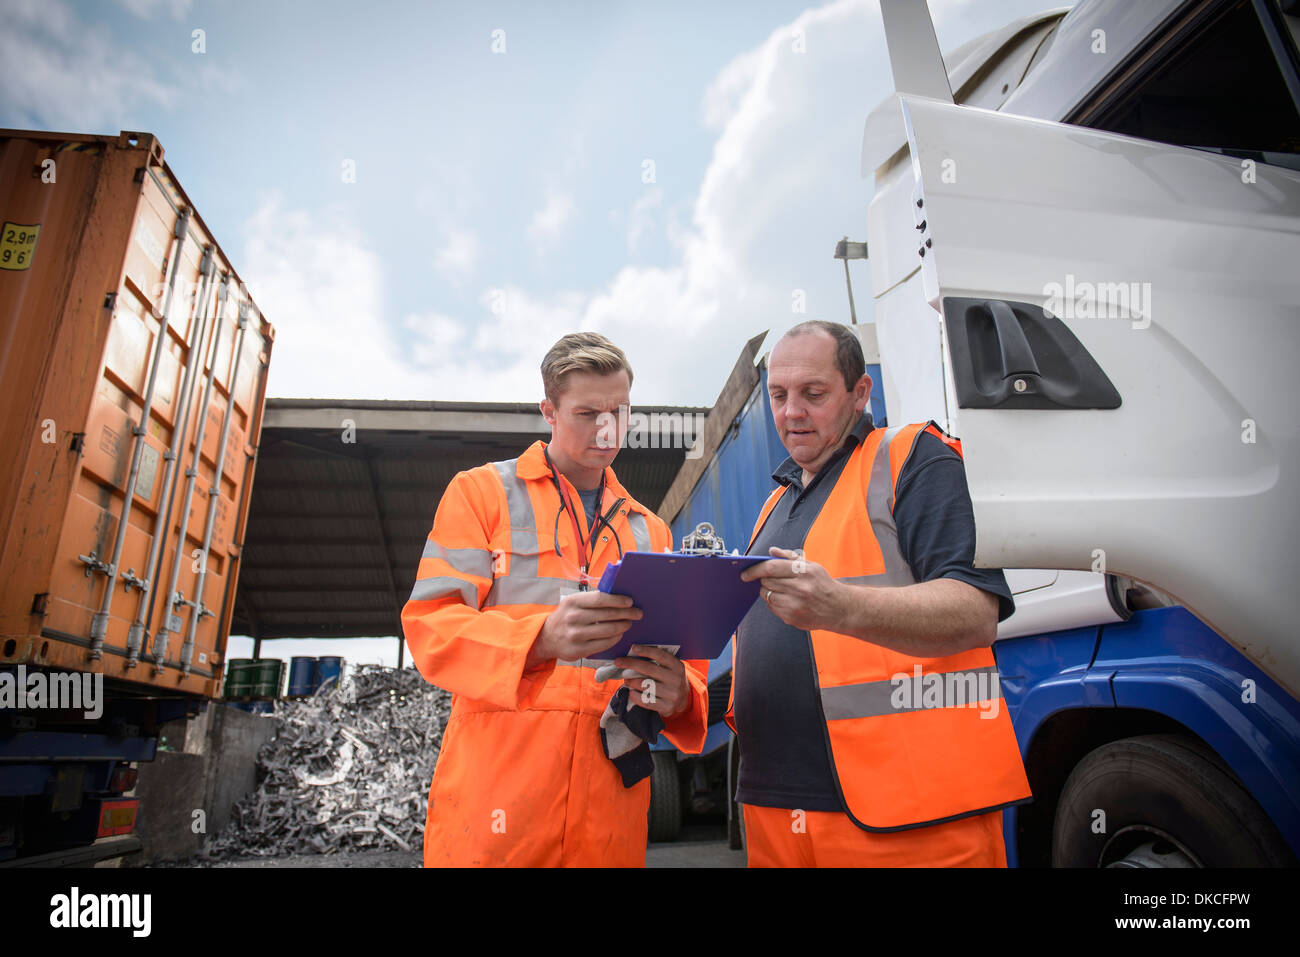 Worker inspecting delivery paperwork with truck driver - Stock Image